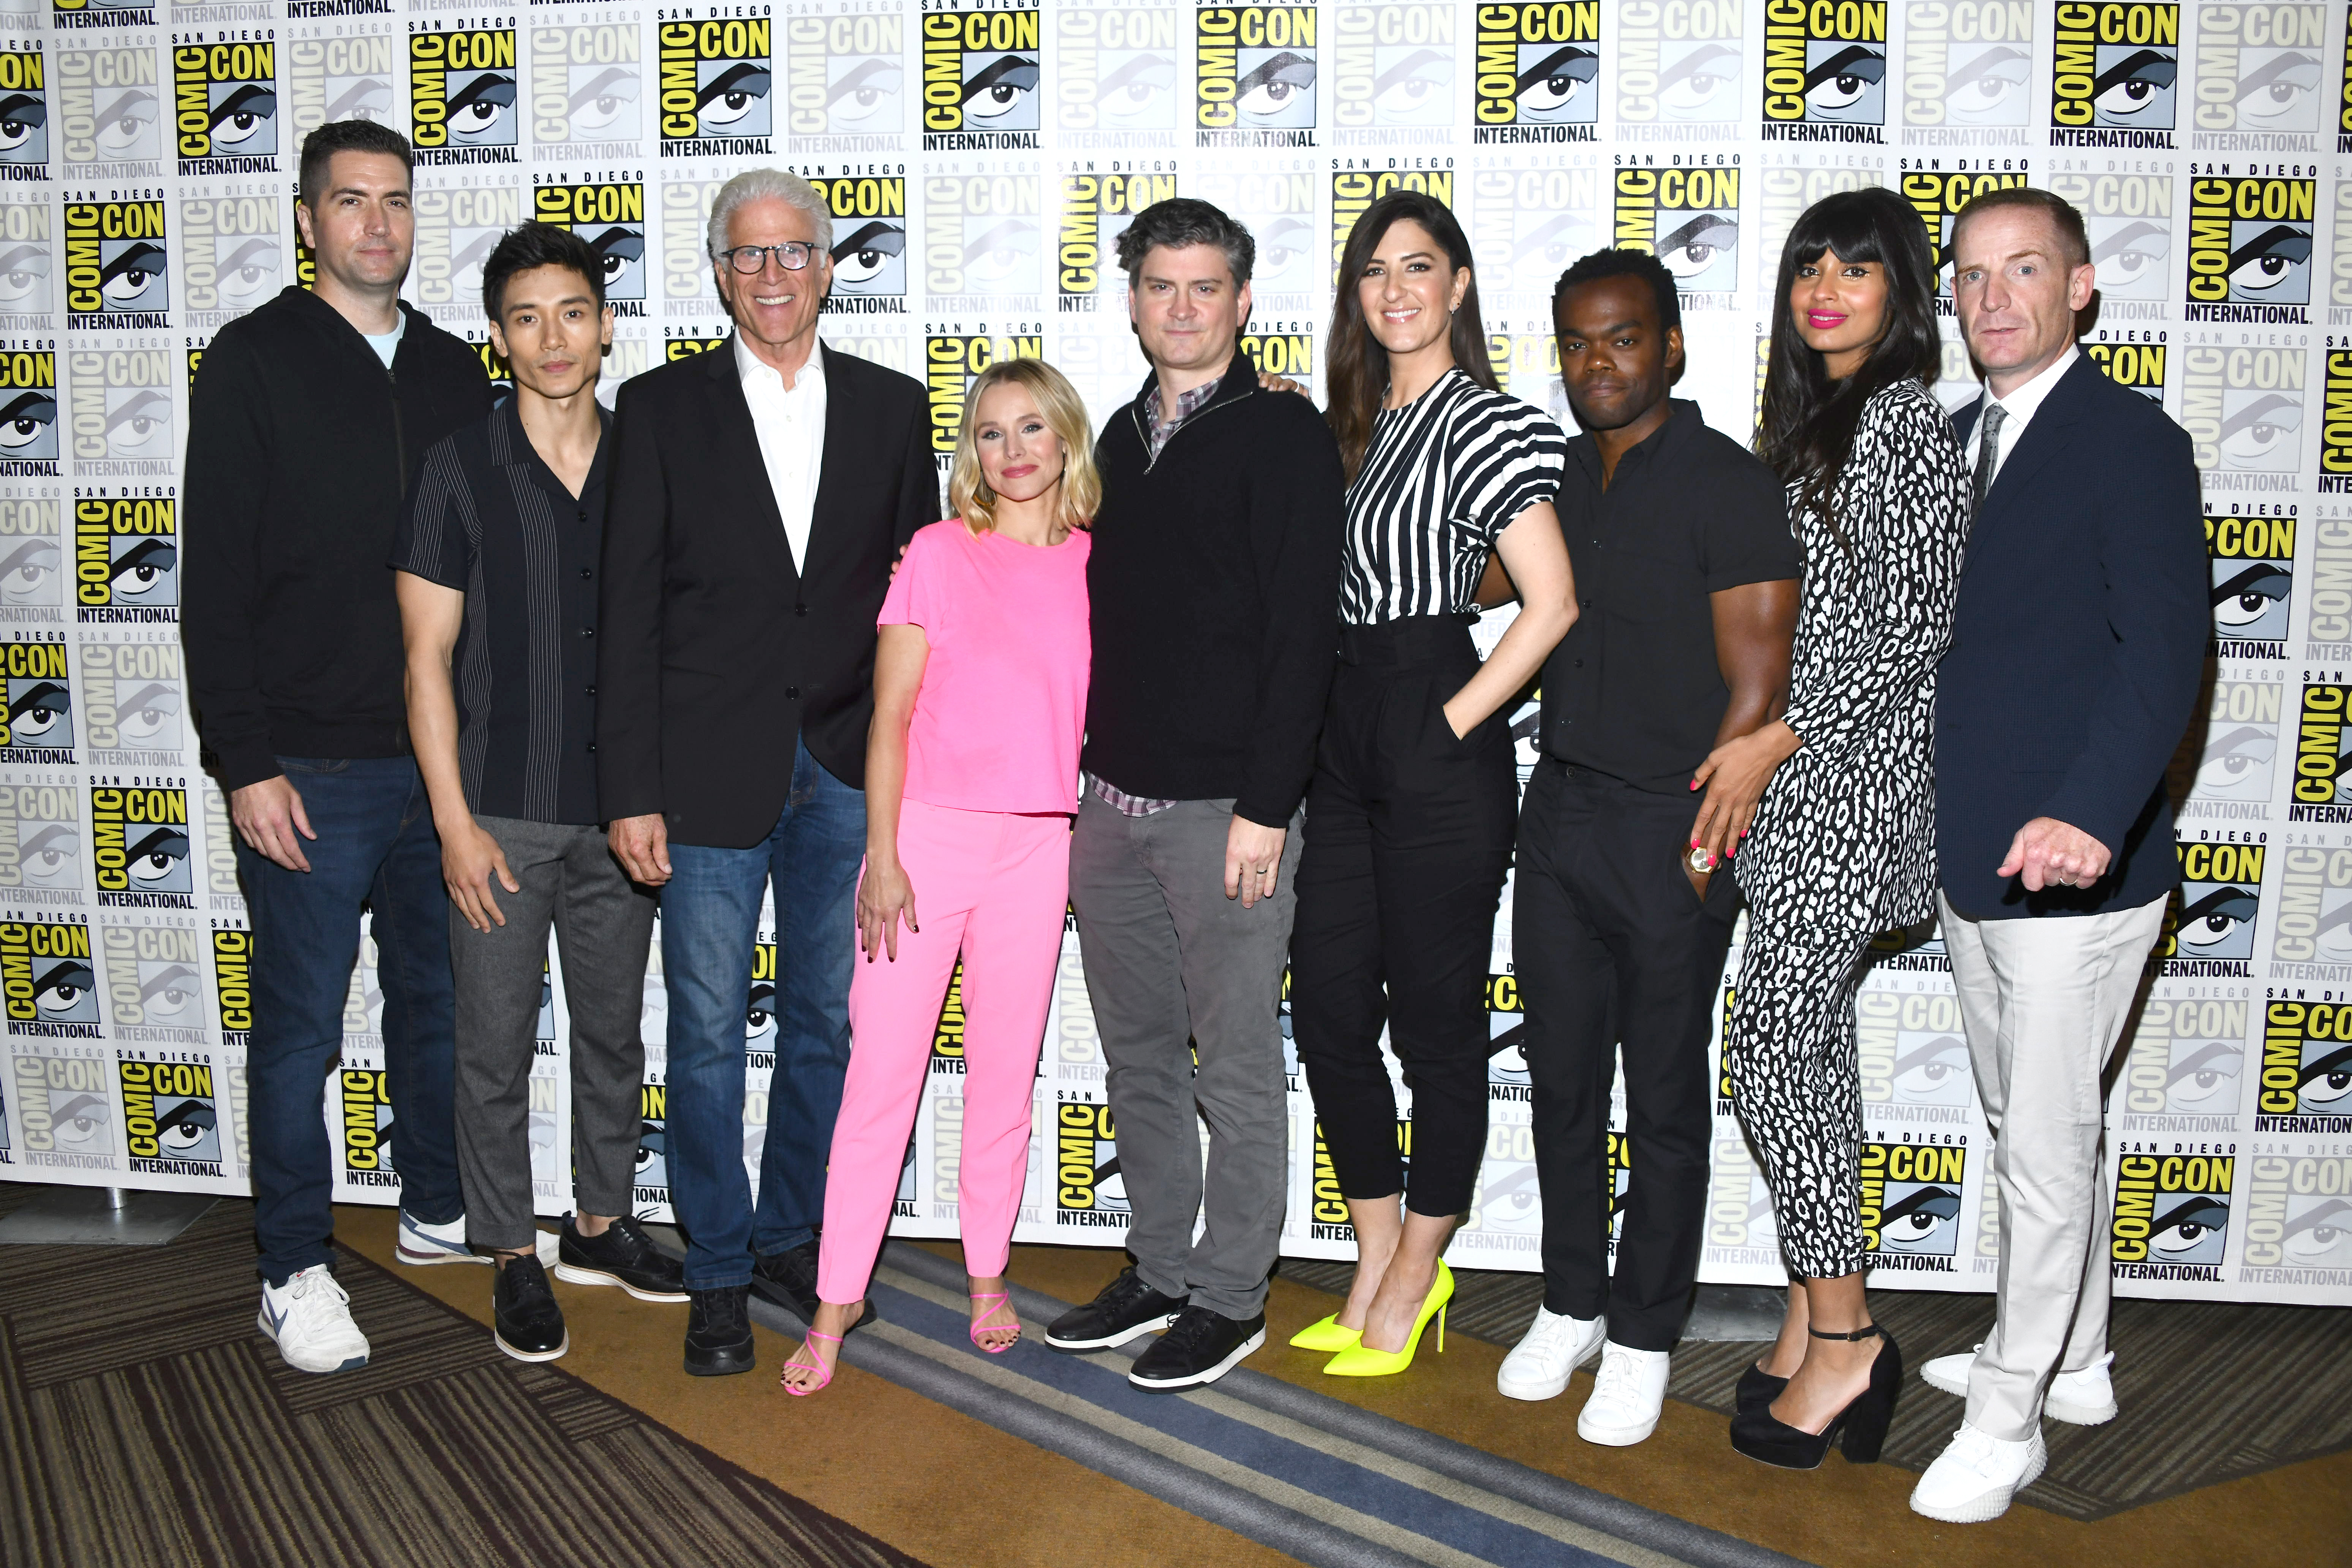 Ted Danson, Kristen Bell, Drew Goddard, Michael Schur, Marc Evan Jackson, William Jackson Harper, Manny Jacinto, Jameela Jamil, and D'Arcy Carden at an event for The Good Place (2016)